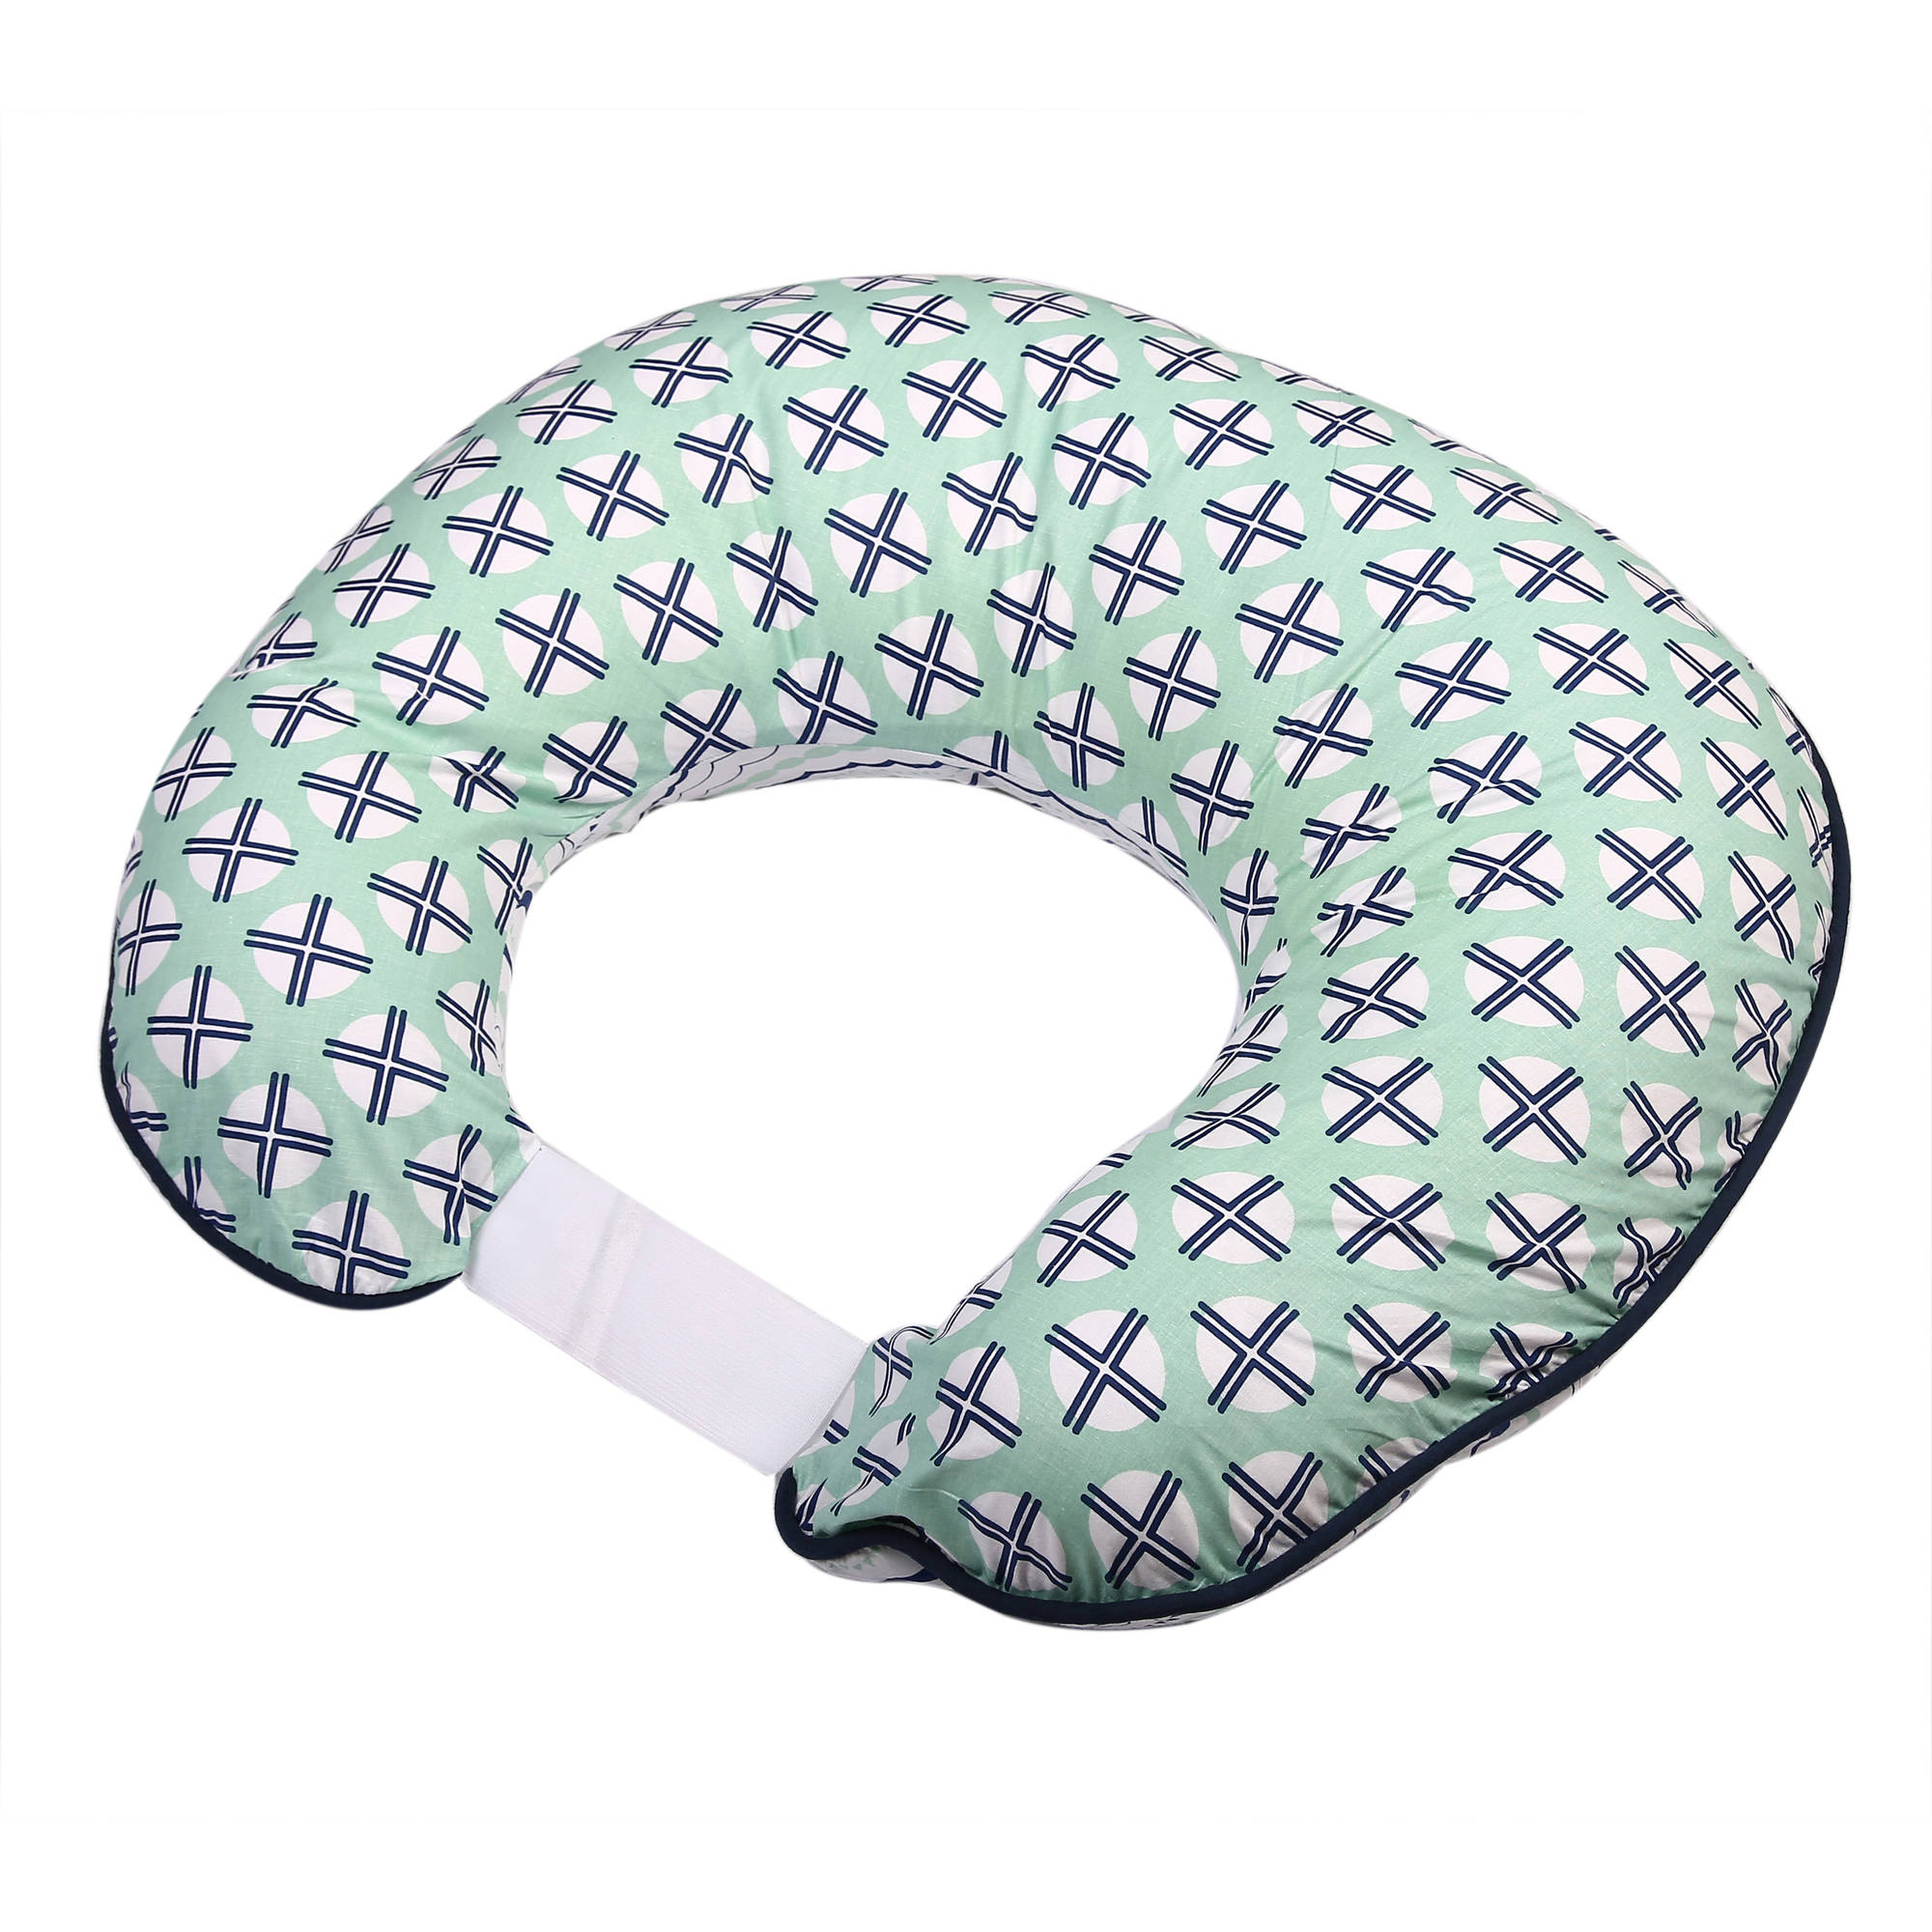 Bacati - Noah Tribal Mint/Navy Nursing Pillow Cover fits perfectly only Bacati - Hugster Nursing Pillow